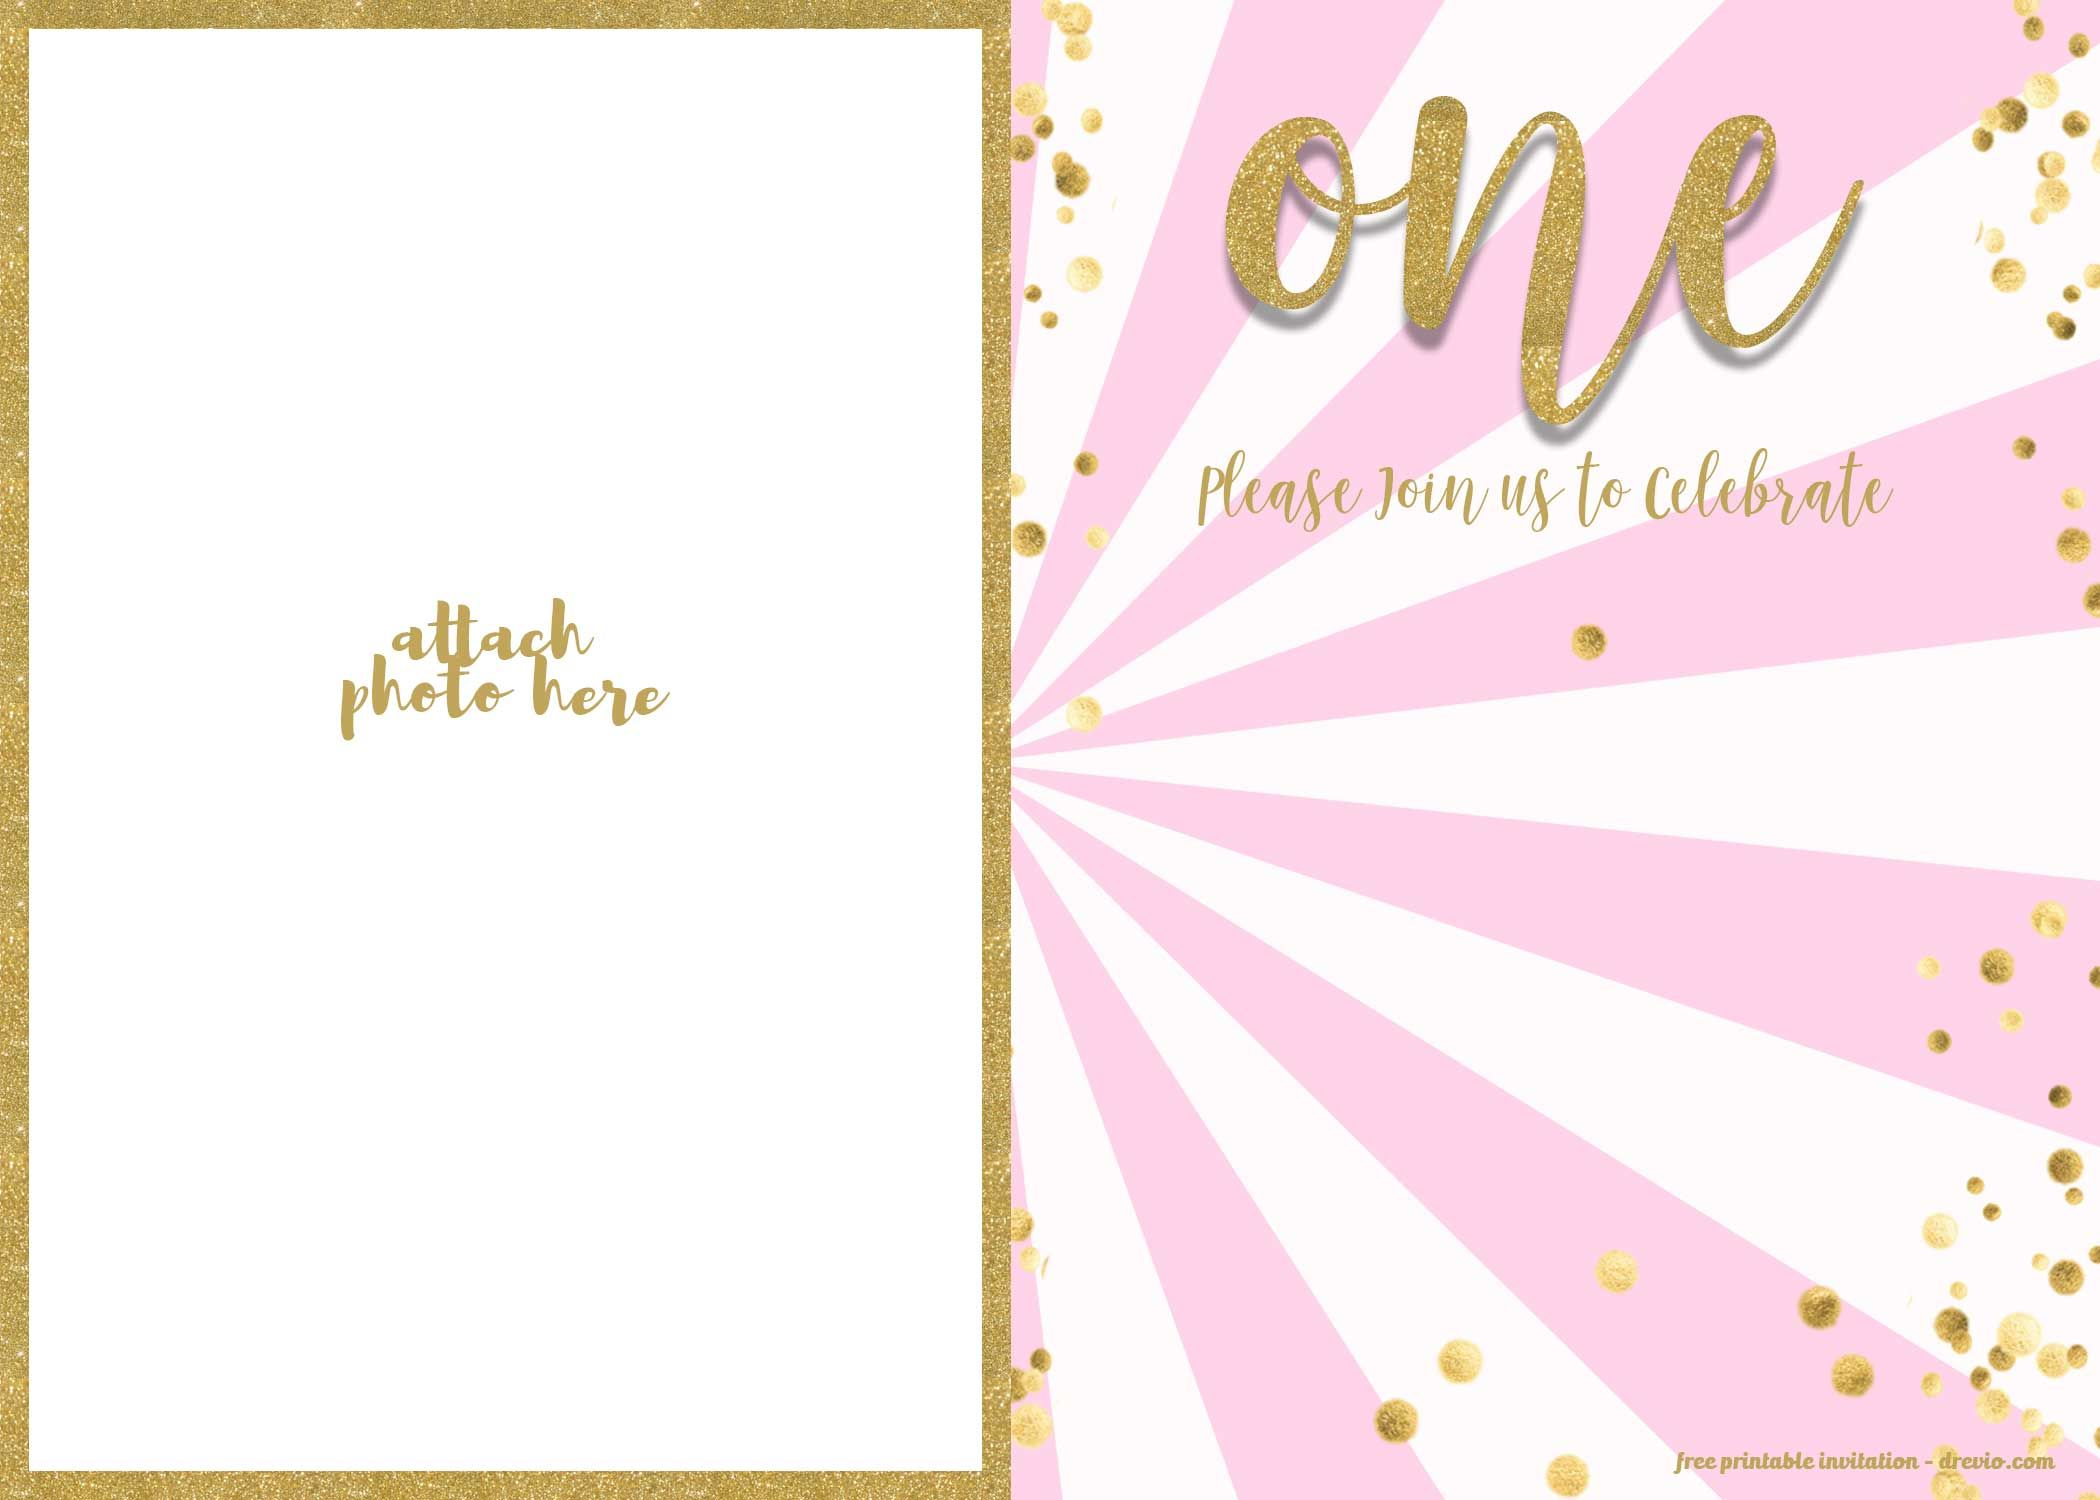 Free 1st Birthday Invitation Pink And Gold Glitter Template Drevio 1st Birthday Invitations 1st Birthday Invitation Template Printable Birthday Invitations